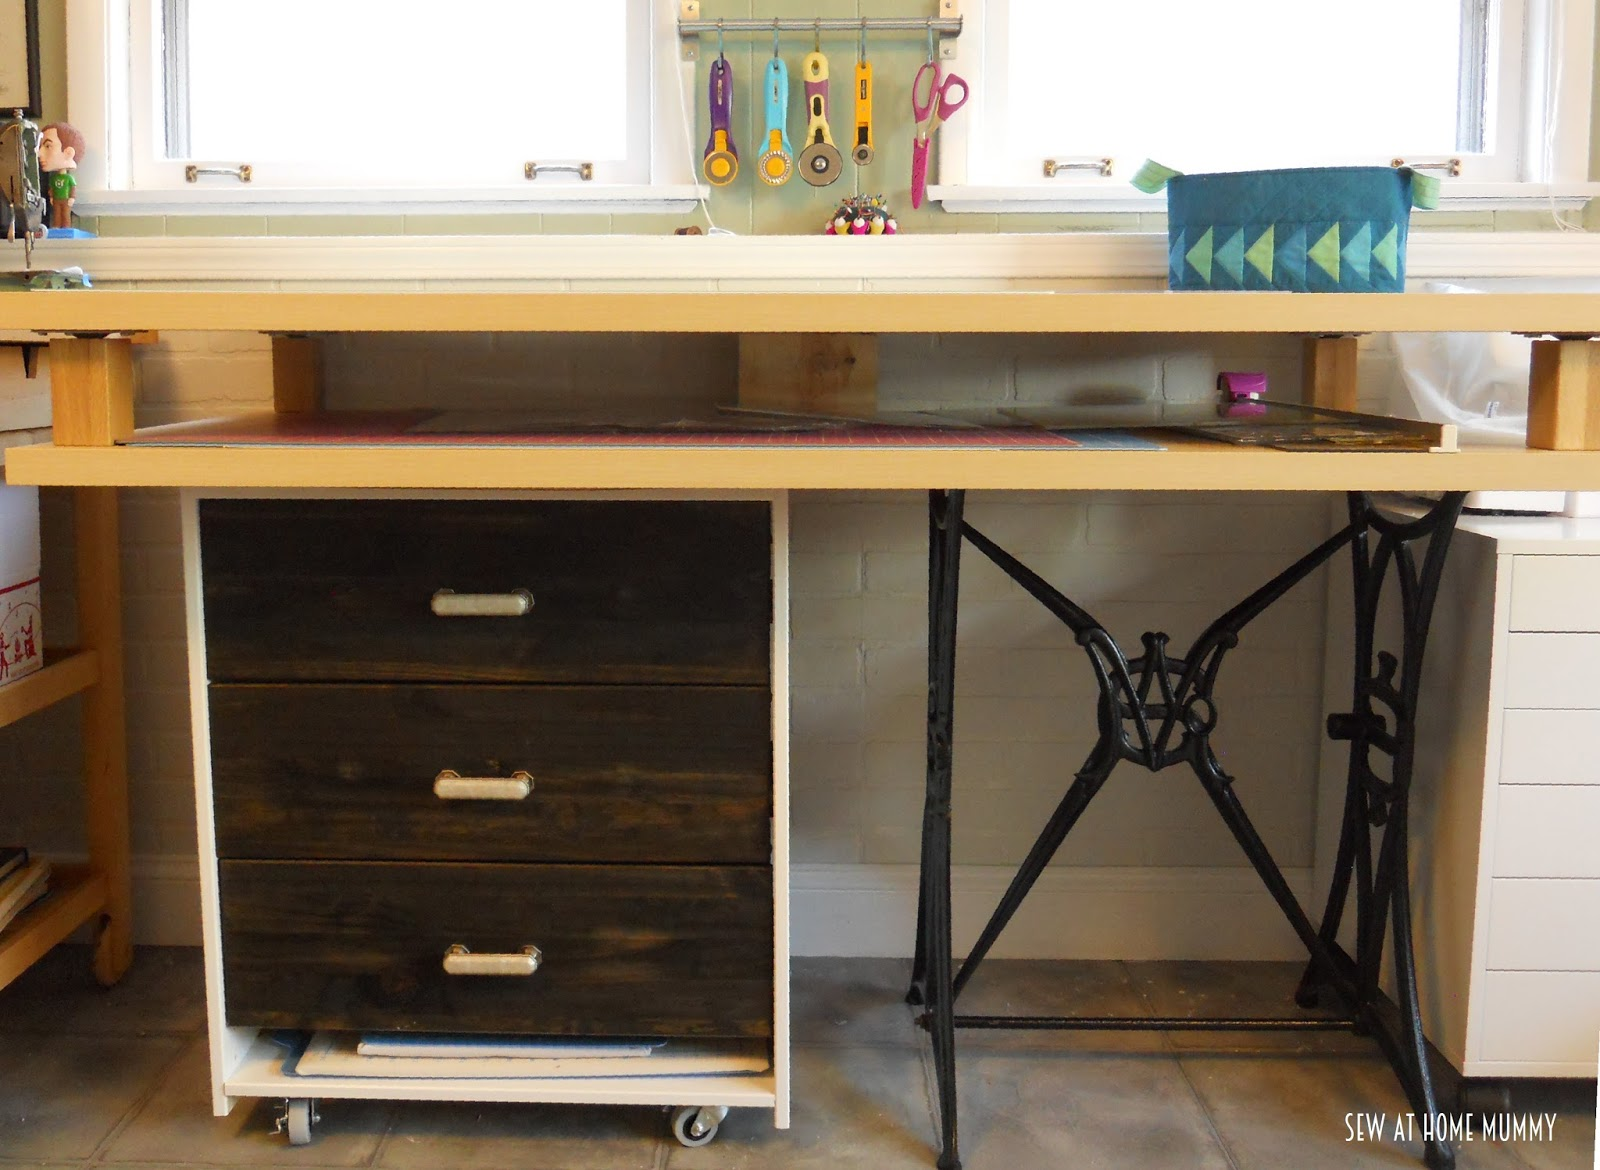 Diy cutting table - The Drawers Are Awesome And Work Well For All Of My Rulers And Templates And Free Up Valuable Drawer And Table Space Elsewhere And The Little Cubby Space